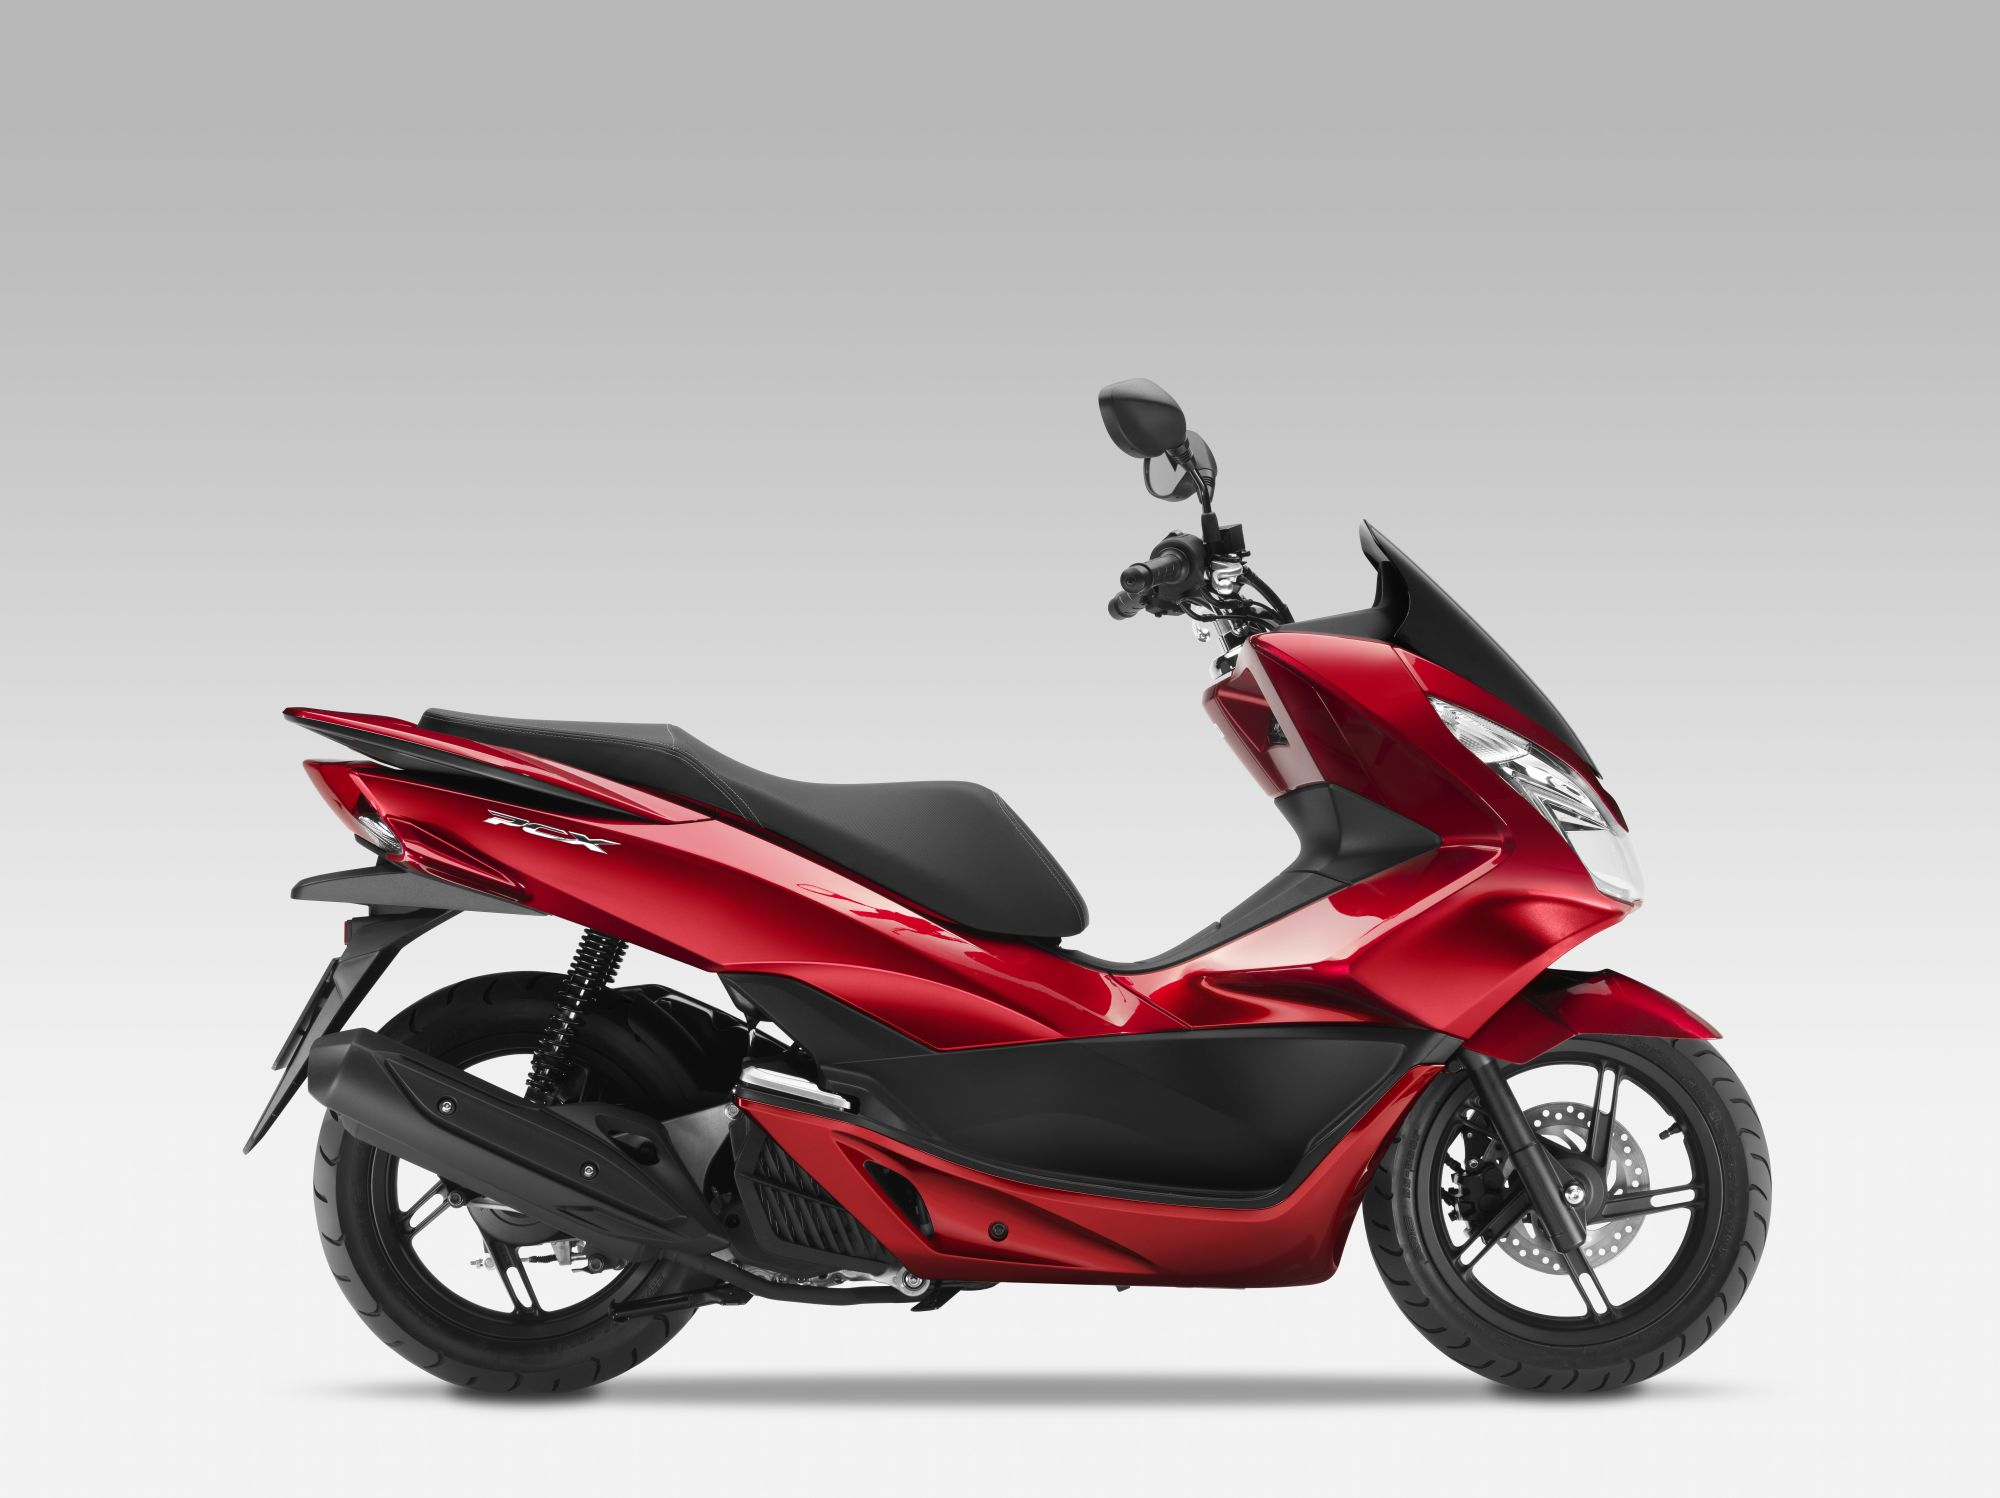 motorrad occasion honda pcx 125 kaufen. Black Bedroom Furniture Sets. Home Design Ideas